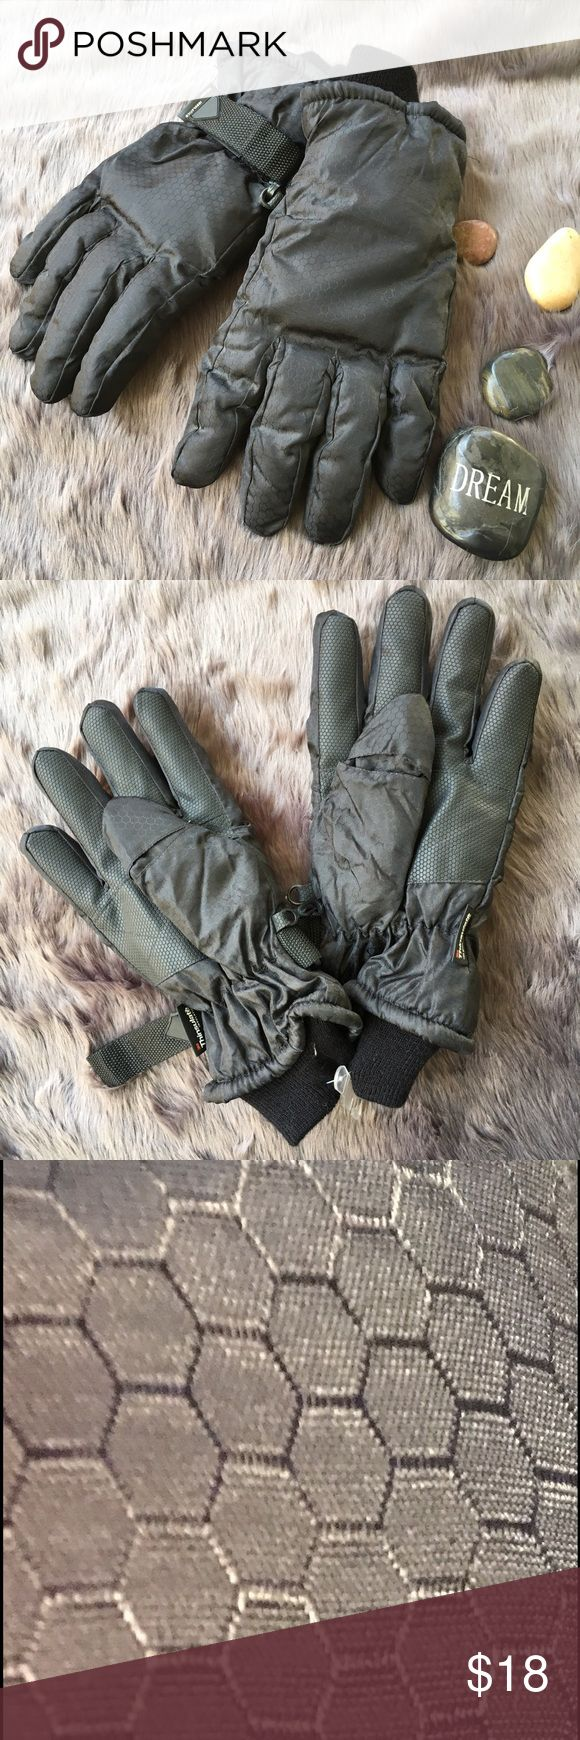 Overstock mens leather gloves - 3m Thinsulate Black Gloves